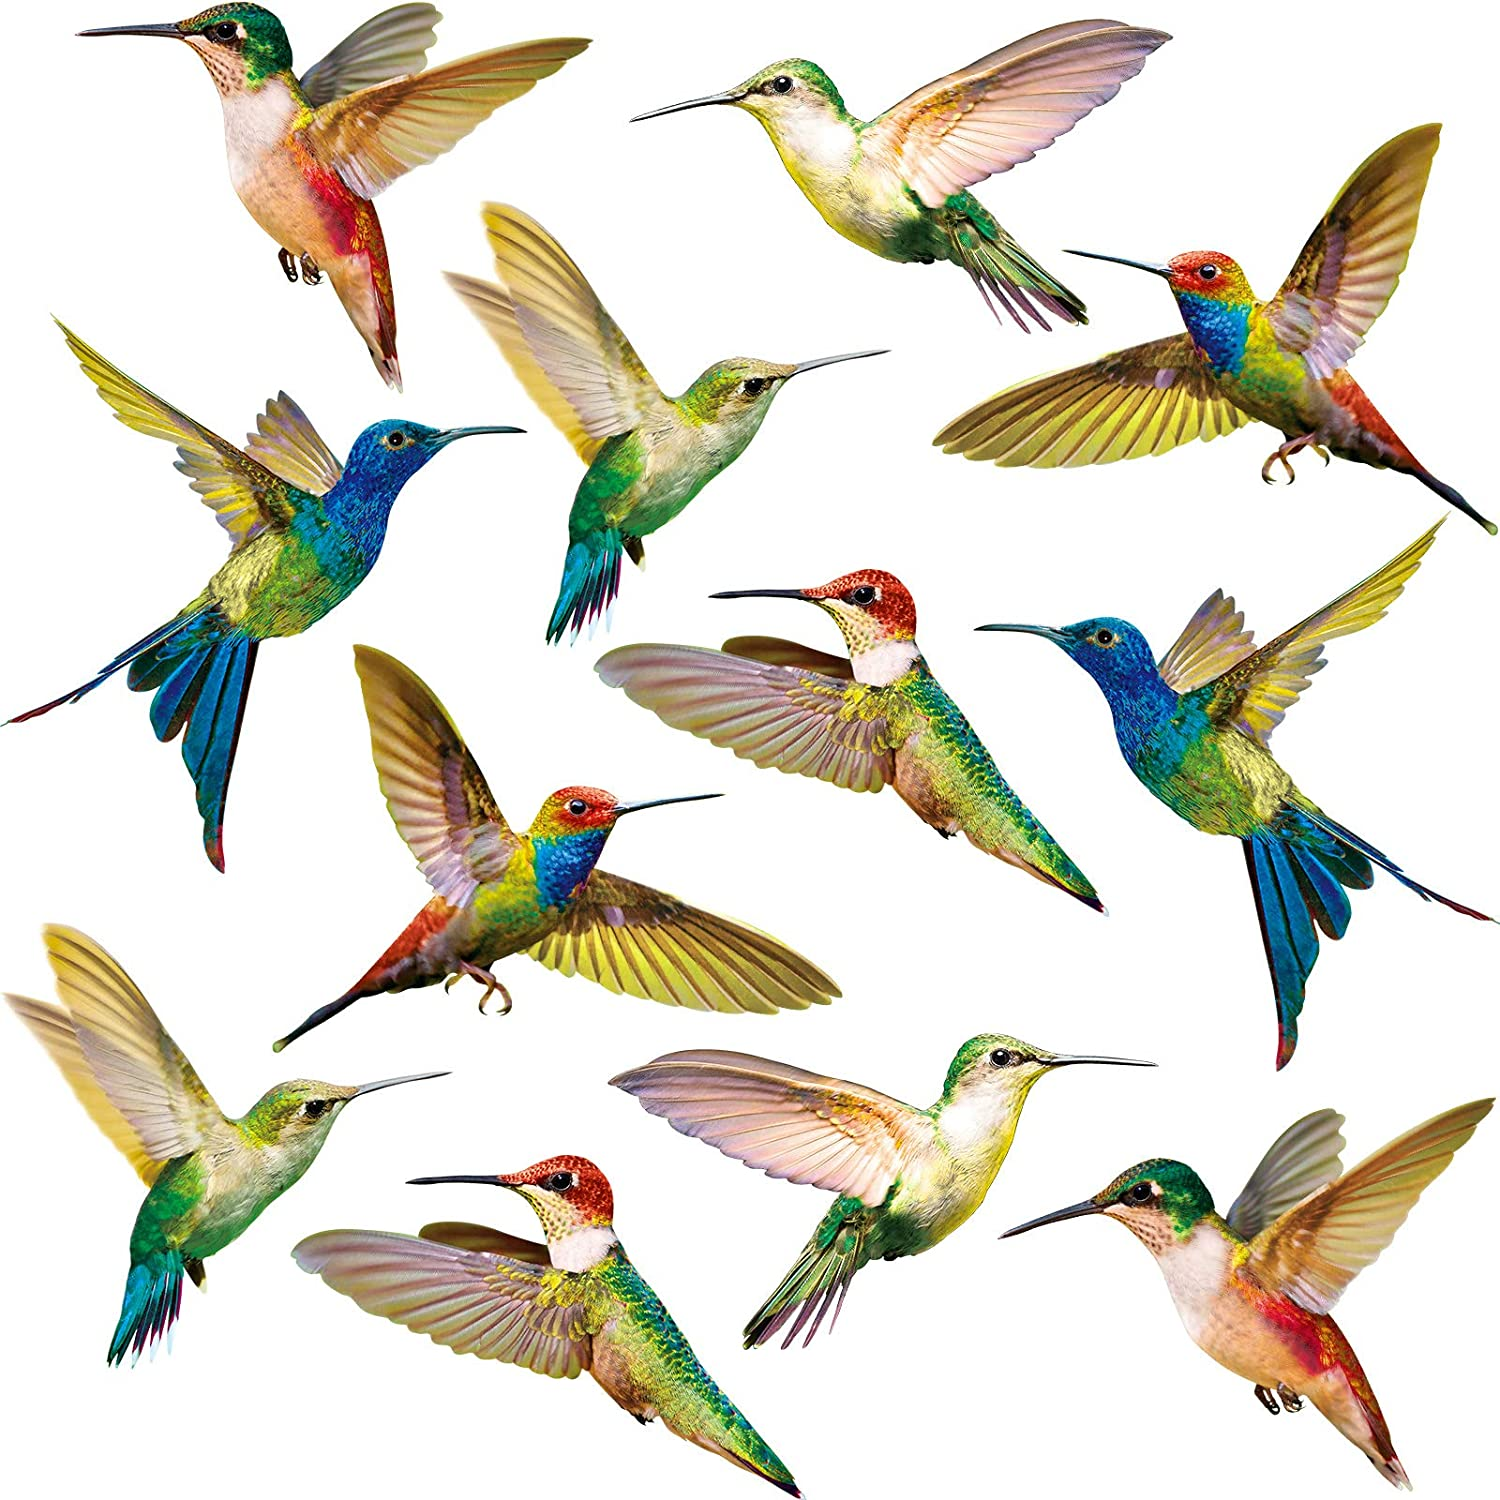 72 Pieces Hummingbird Shape Window Clings Anti-Collision Window Clings Decals to Prevent Bird Strikes on Window Glass Non Adhesive Vinyl Window Stickers